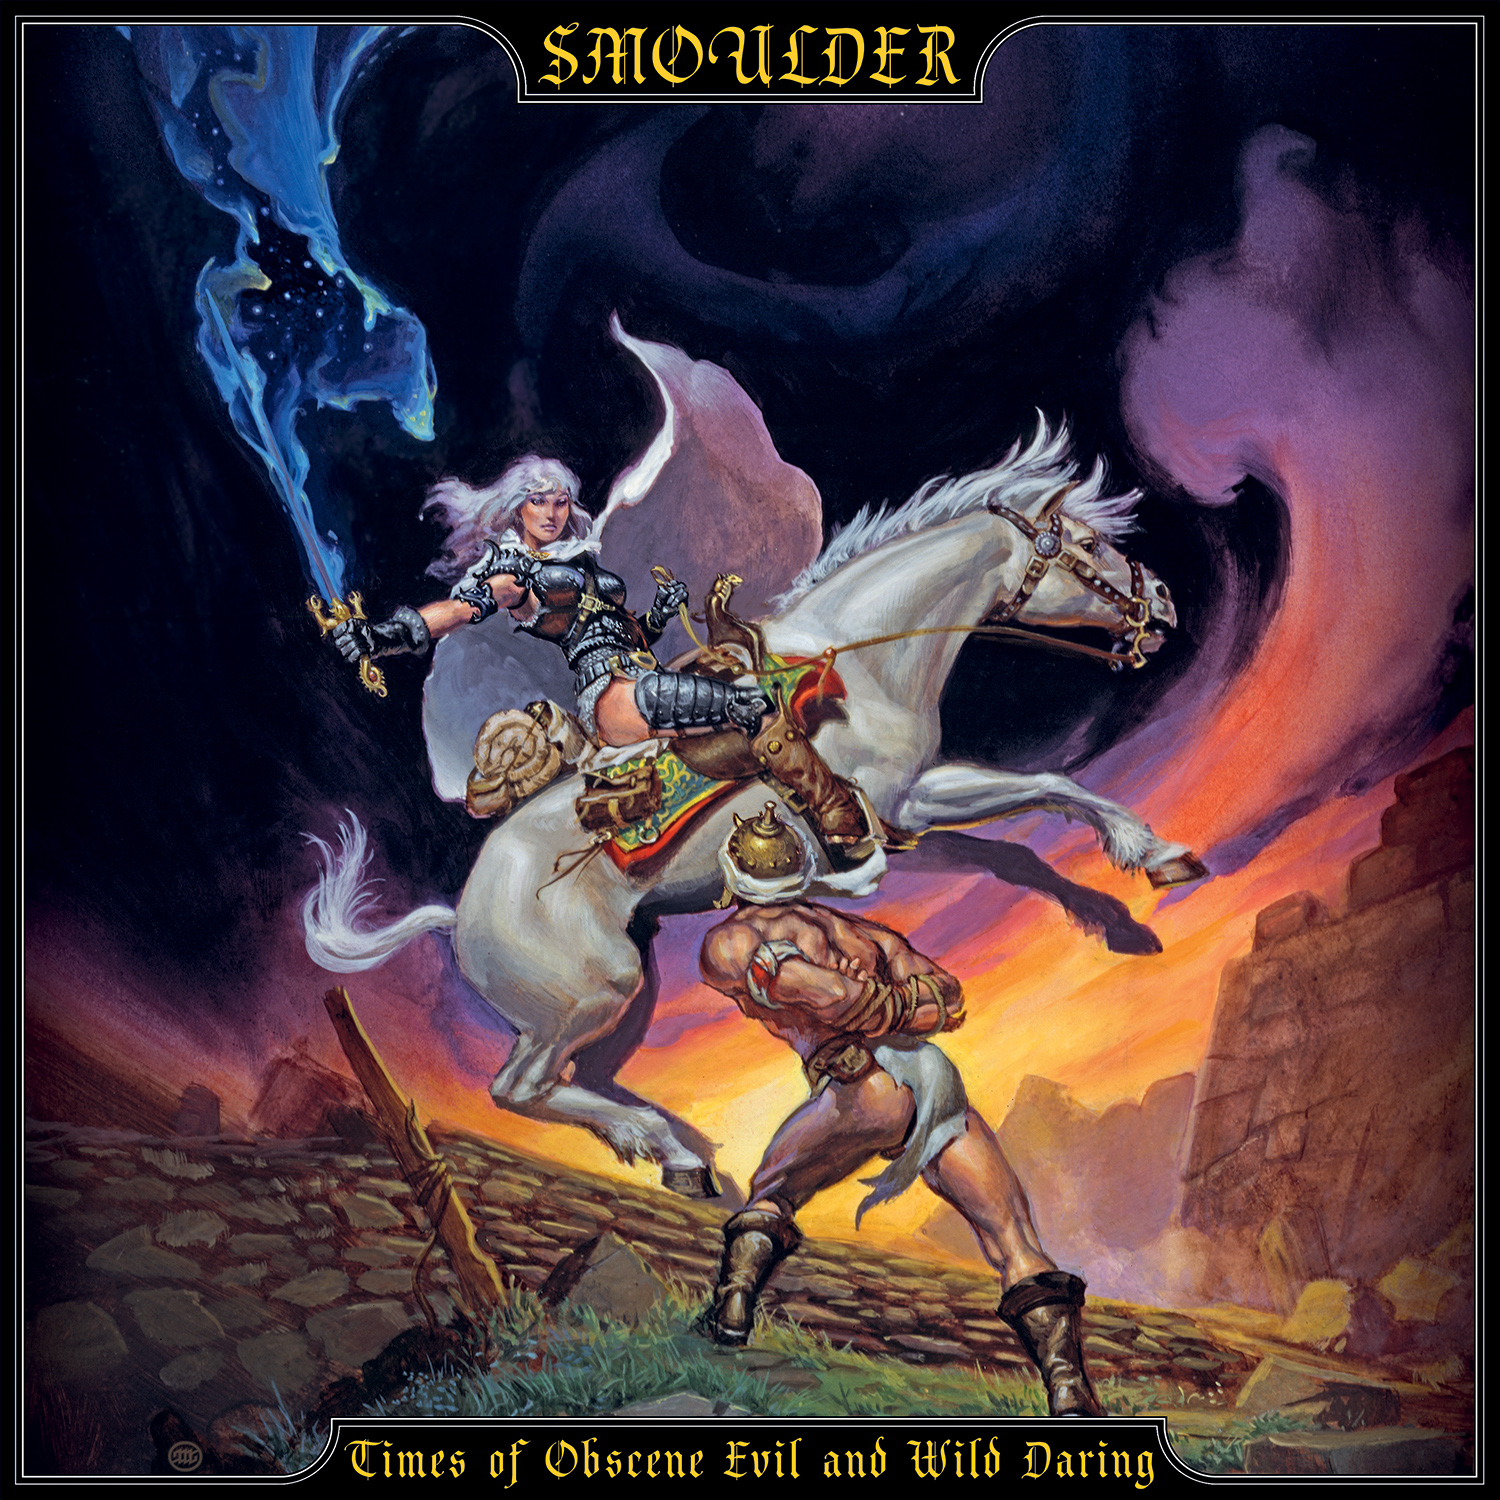 smoulder-times-of-obscene-evil-and-wild-daring-geschichtenerzaehler-album-review